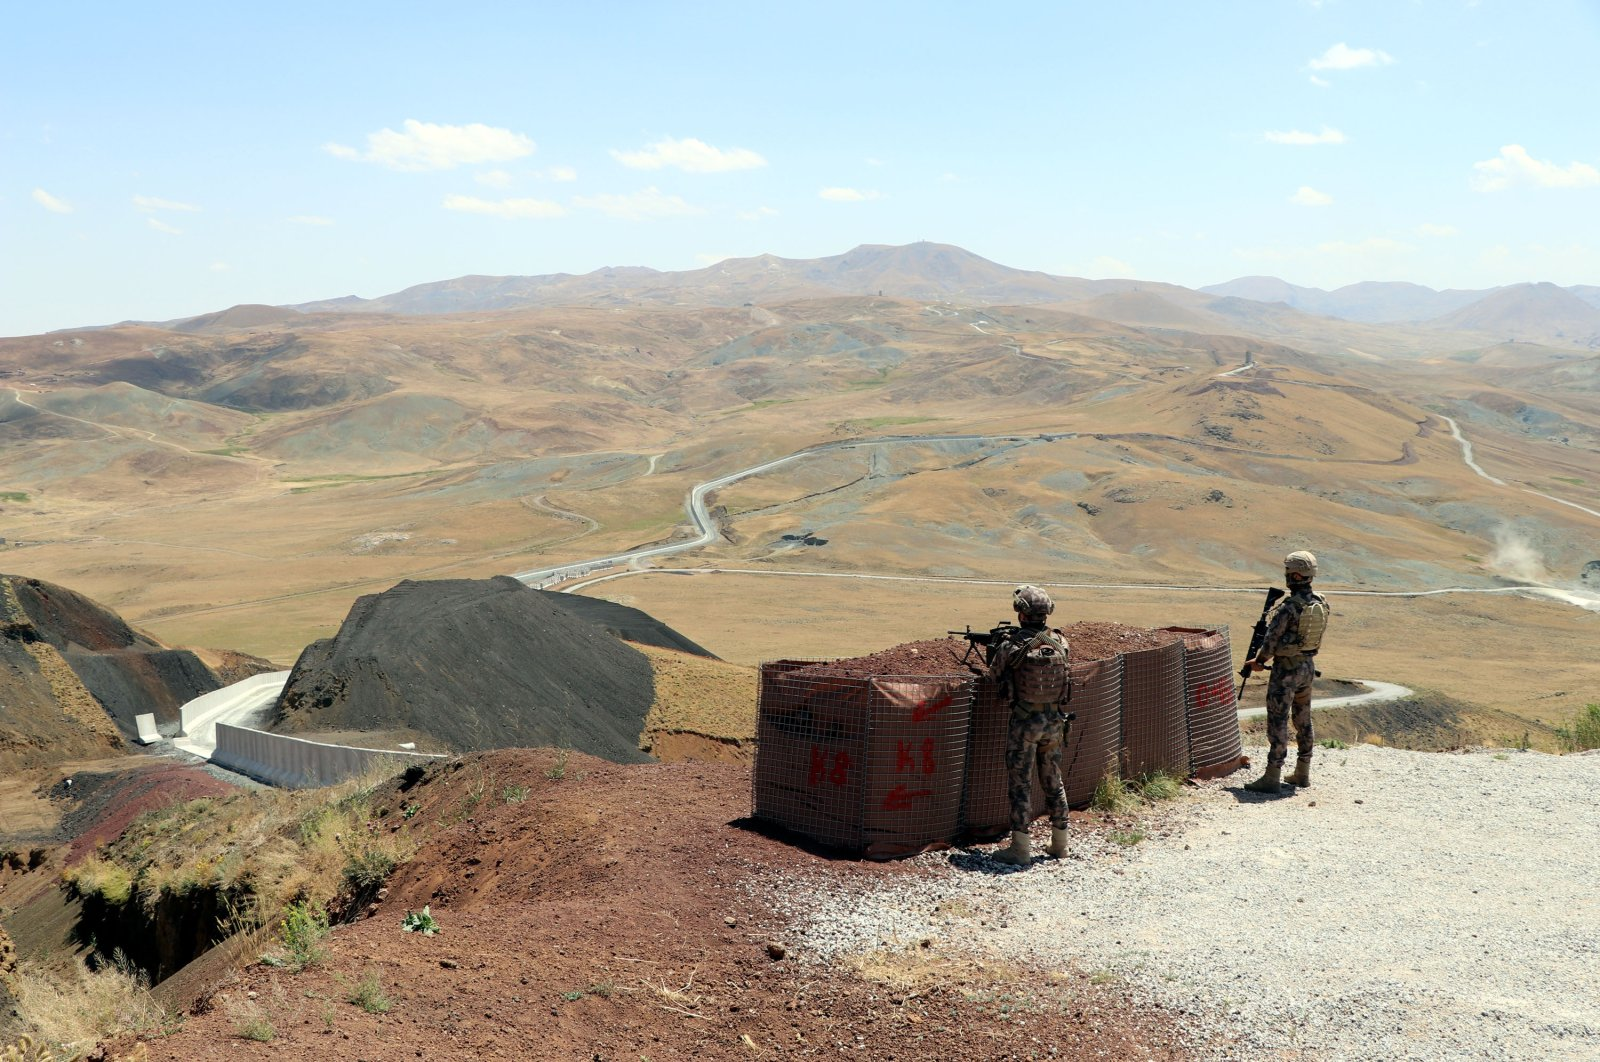 A view from Turkey's eastern border with Iran, Van, Turkey, July 27, 2021. (DHA Photo)